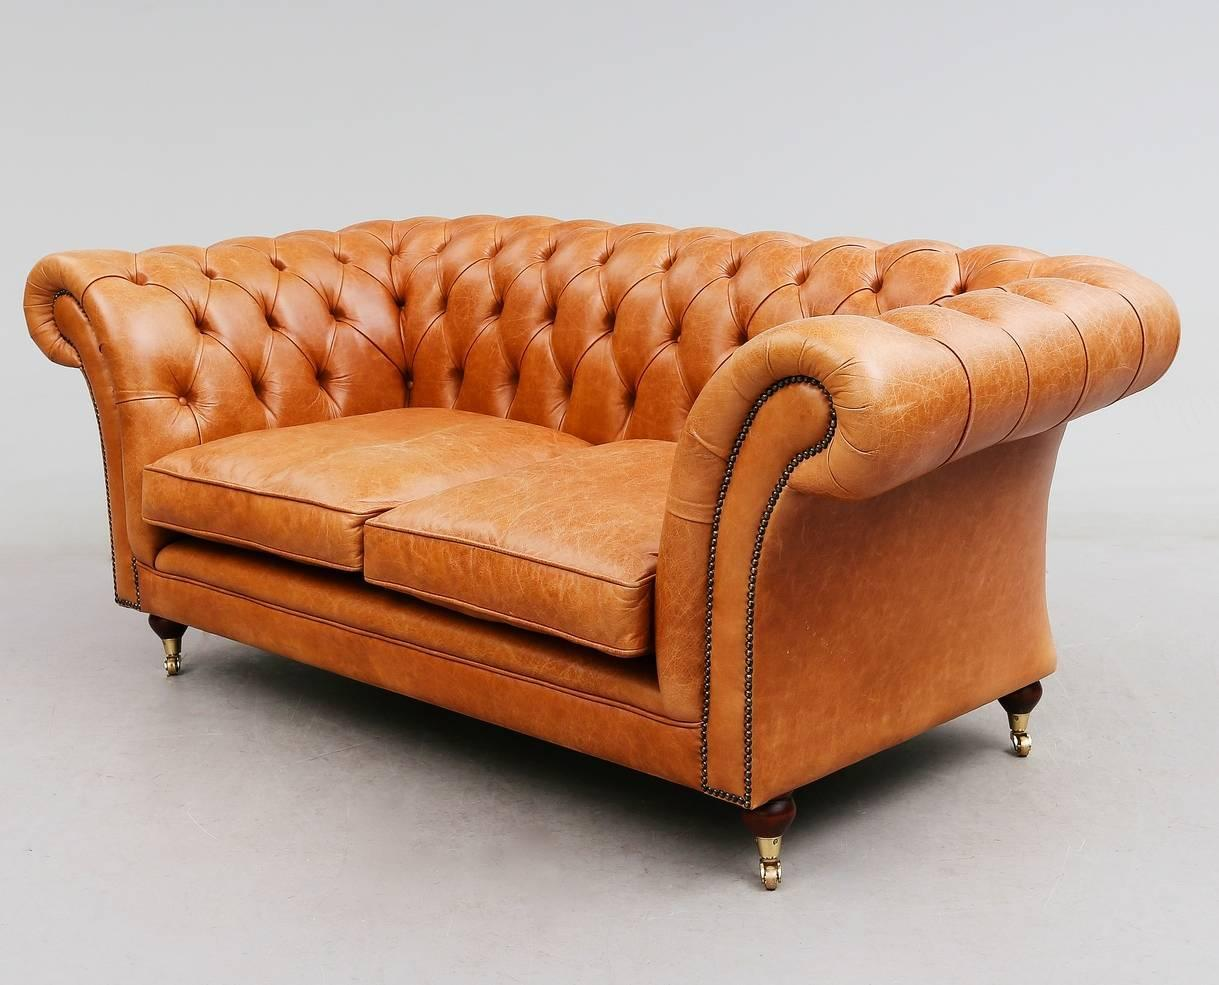 light brown leather chesterfield sofa for sale at 1stdibs. Black Bedroom Furniture Sets. Home Design Ideas